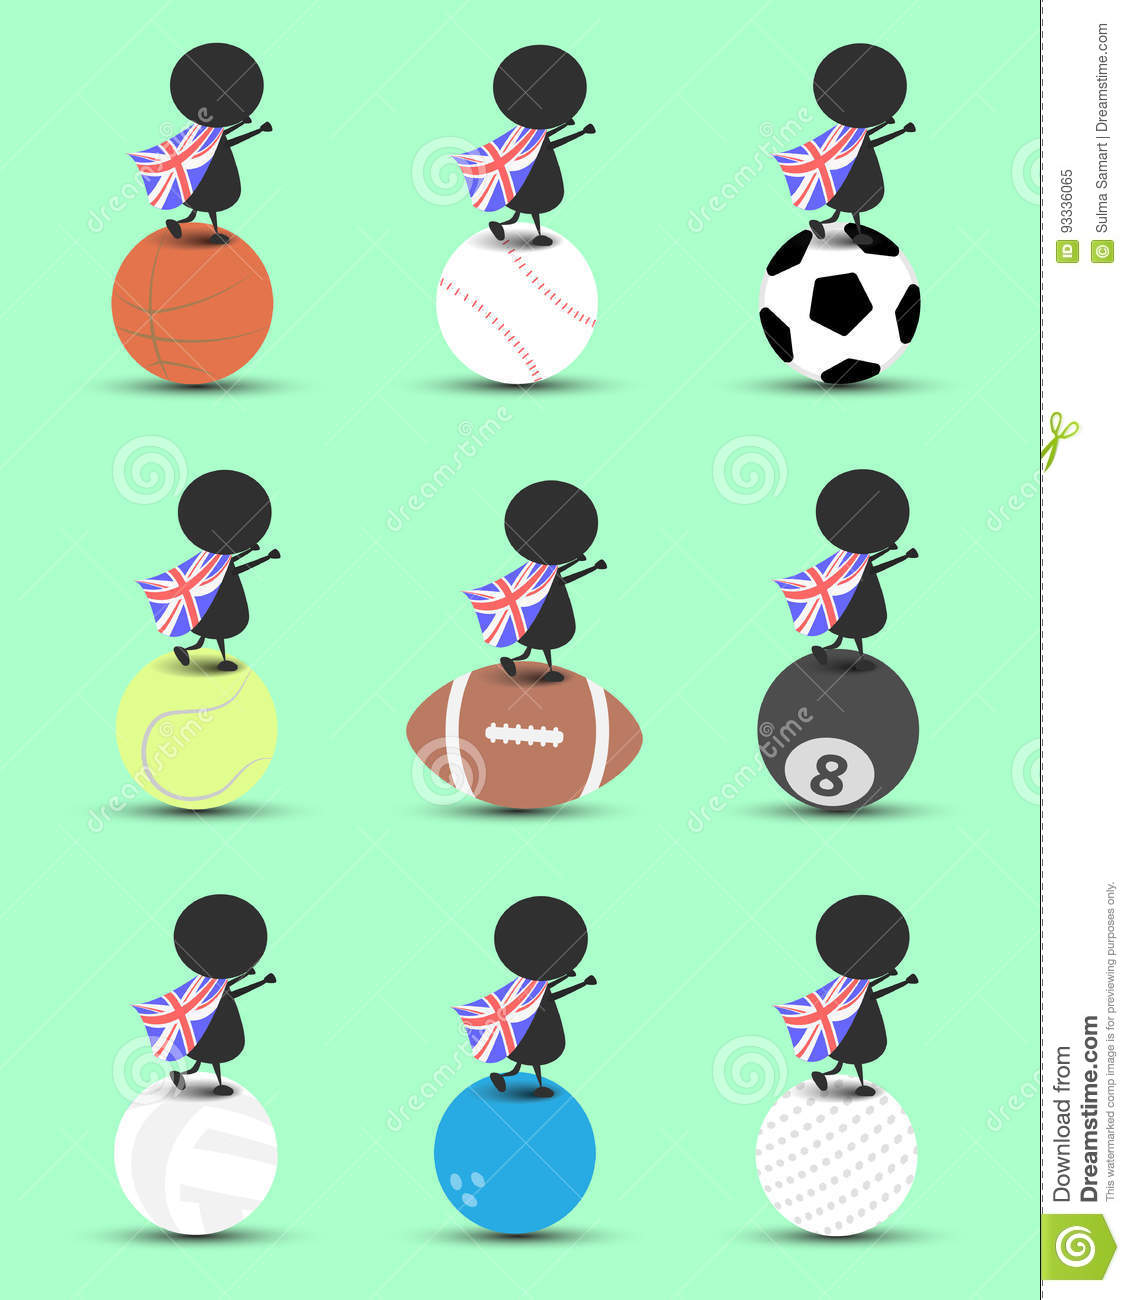 Black Man Character Cartoon Stand On Sports Ball And Hands Up